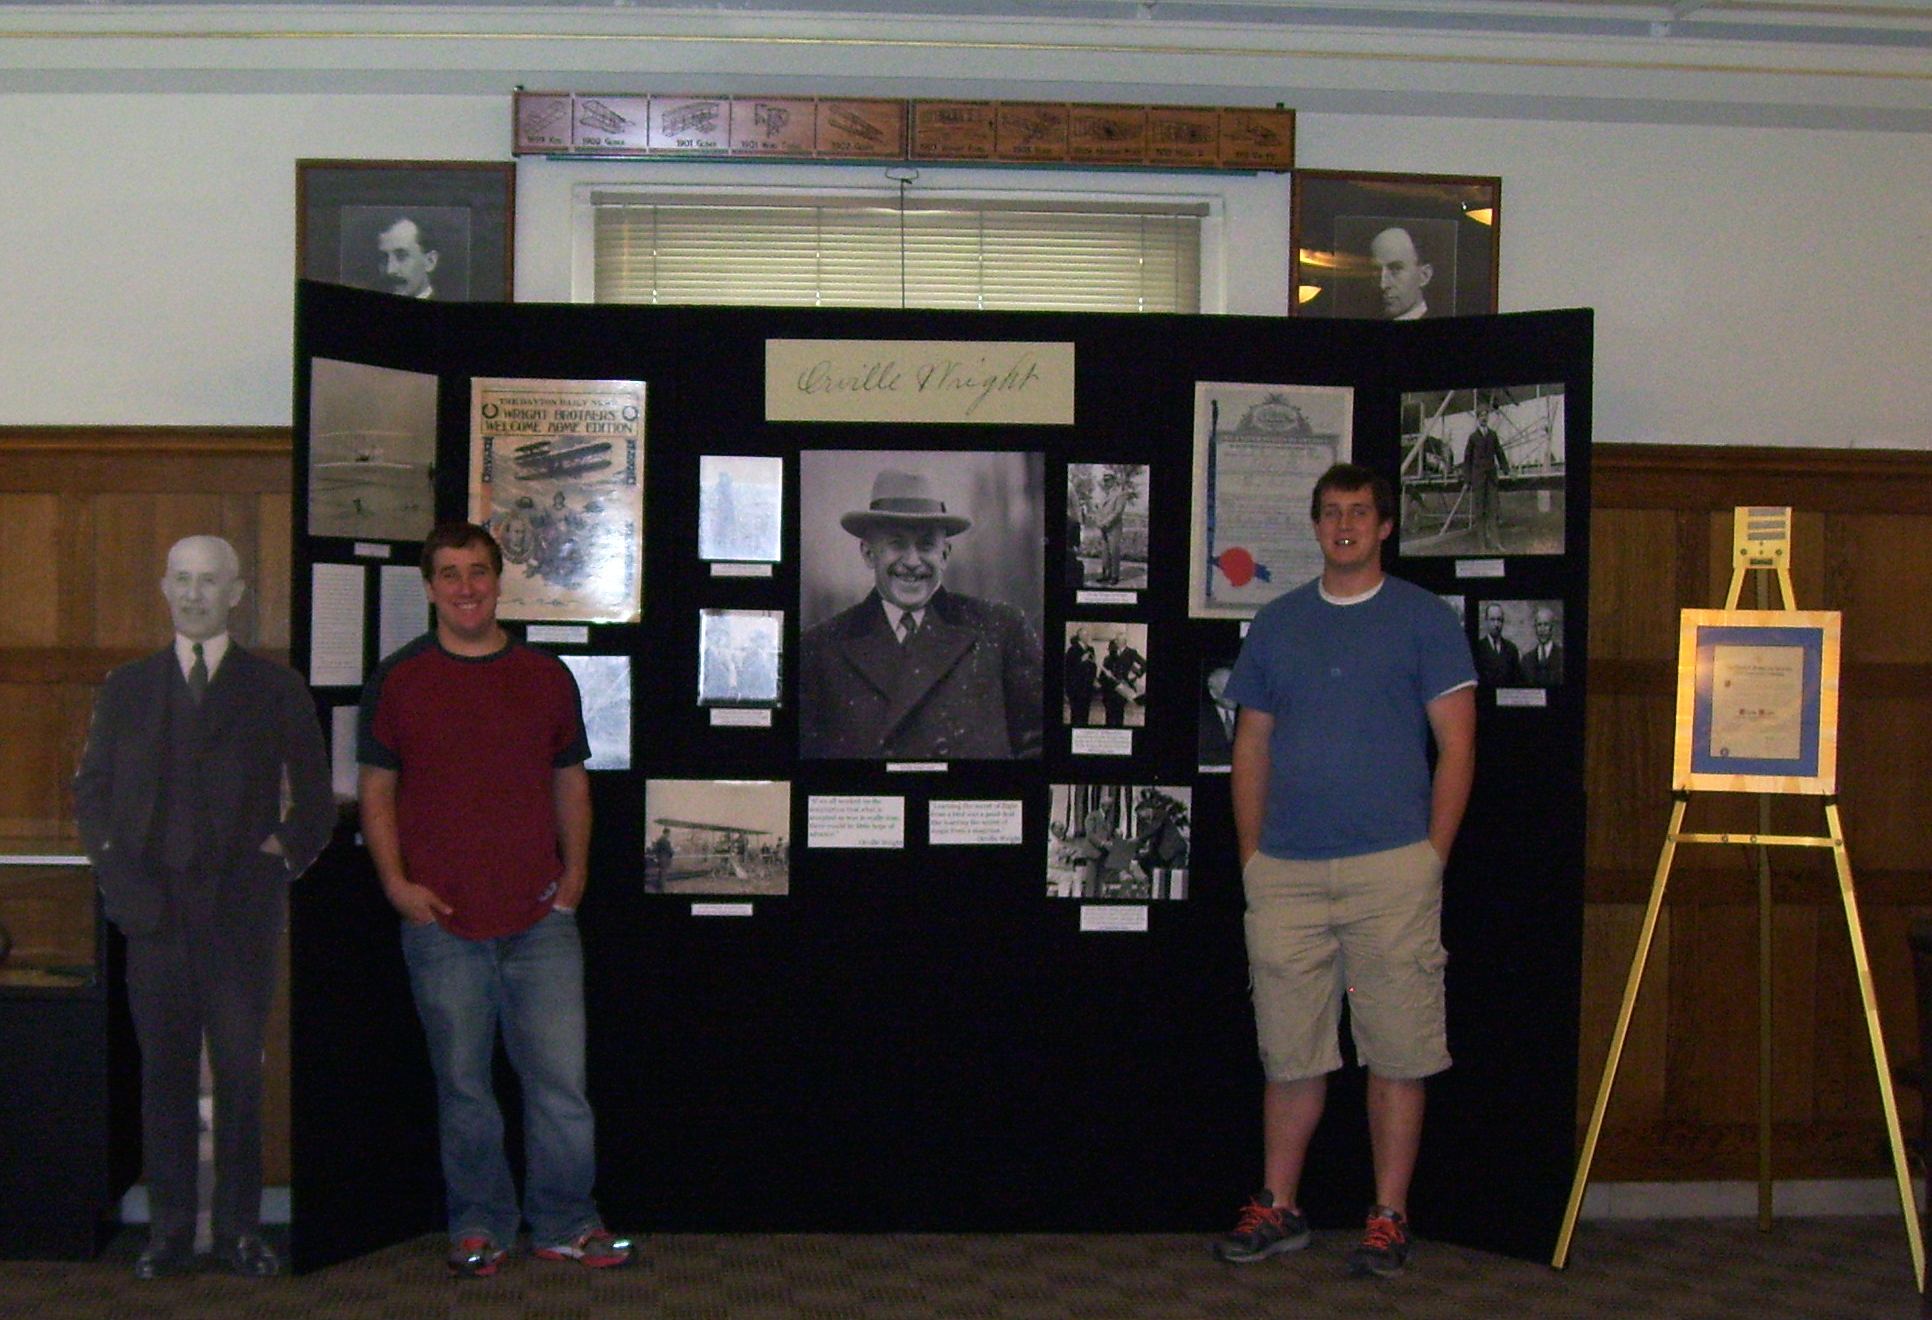 Adam (left) and Jordan with the Orville Wright portion of their exhibit